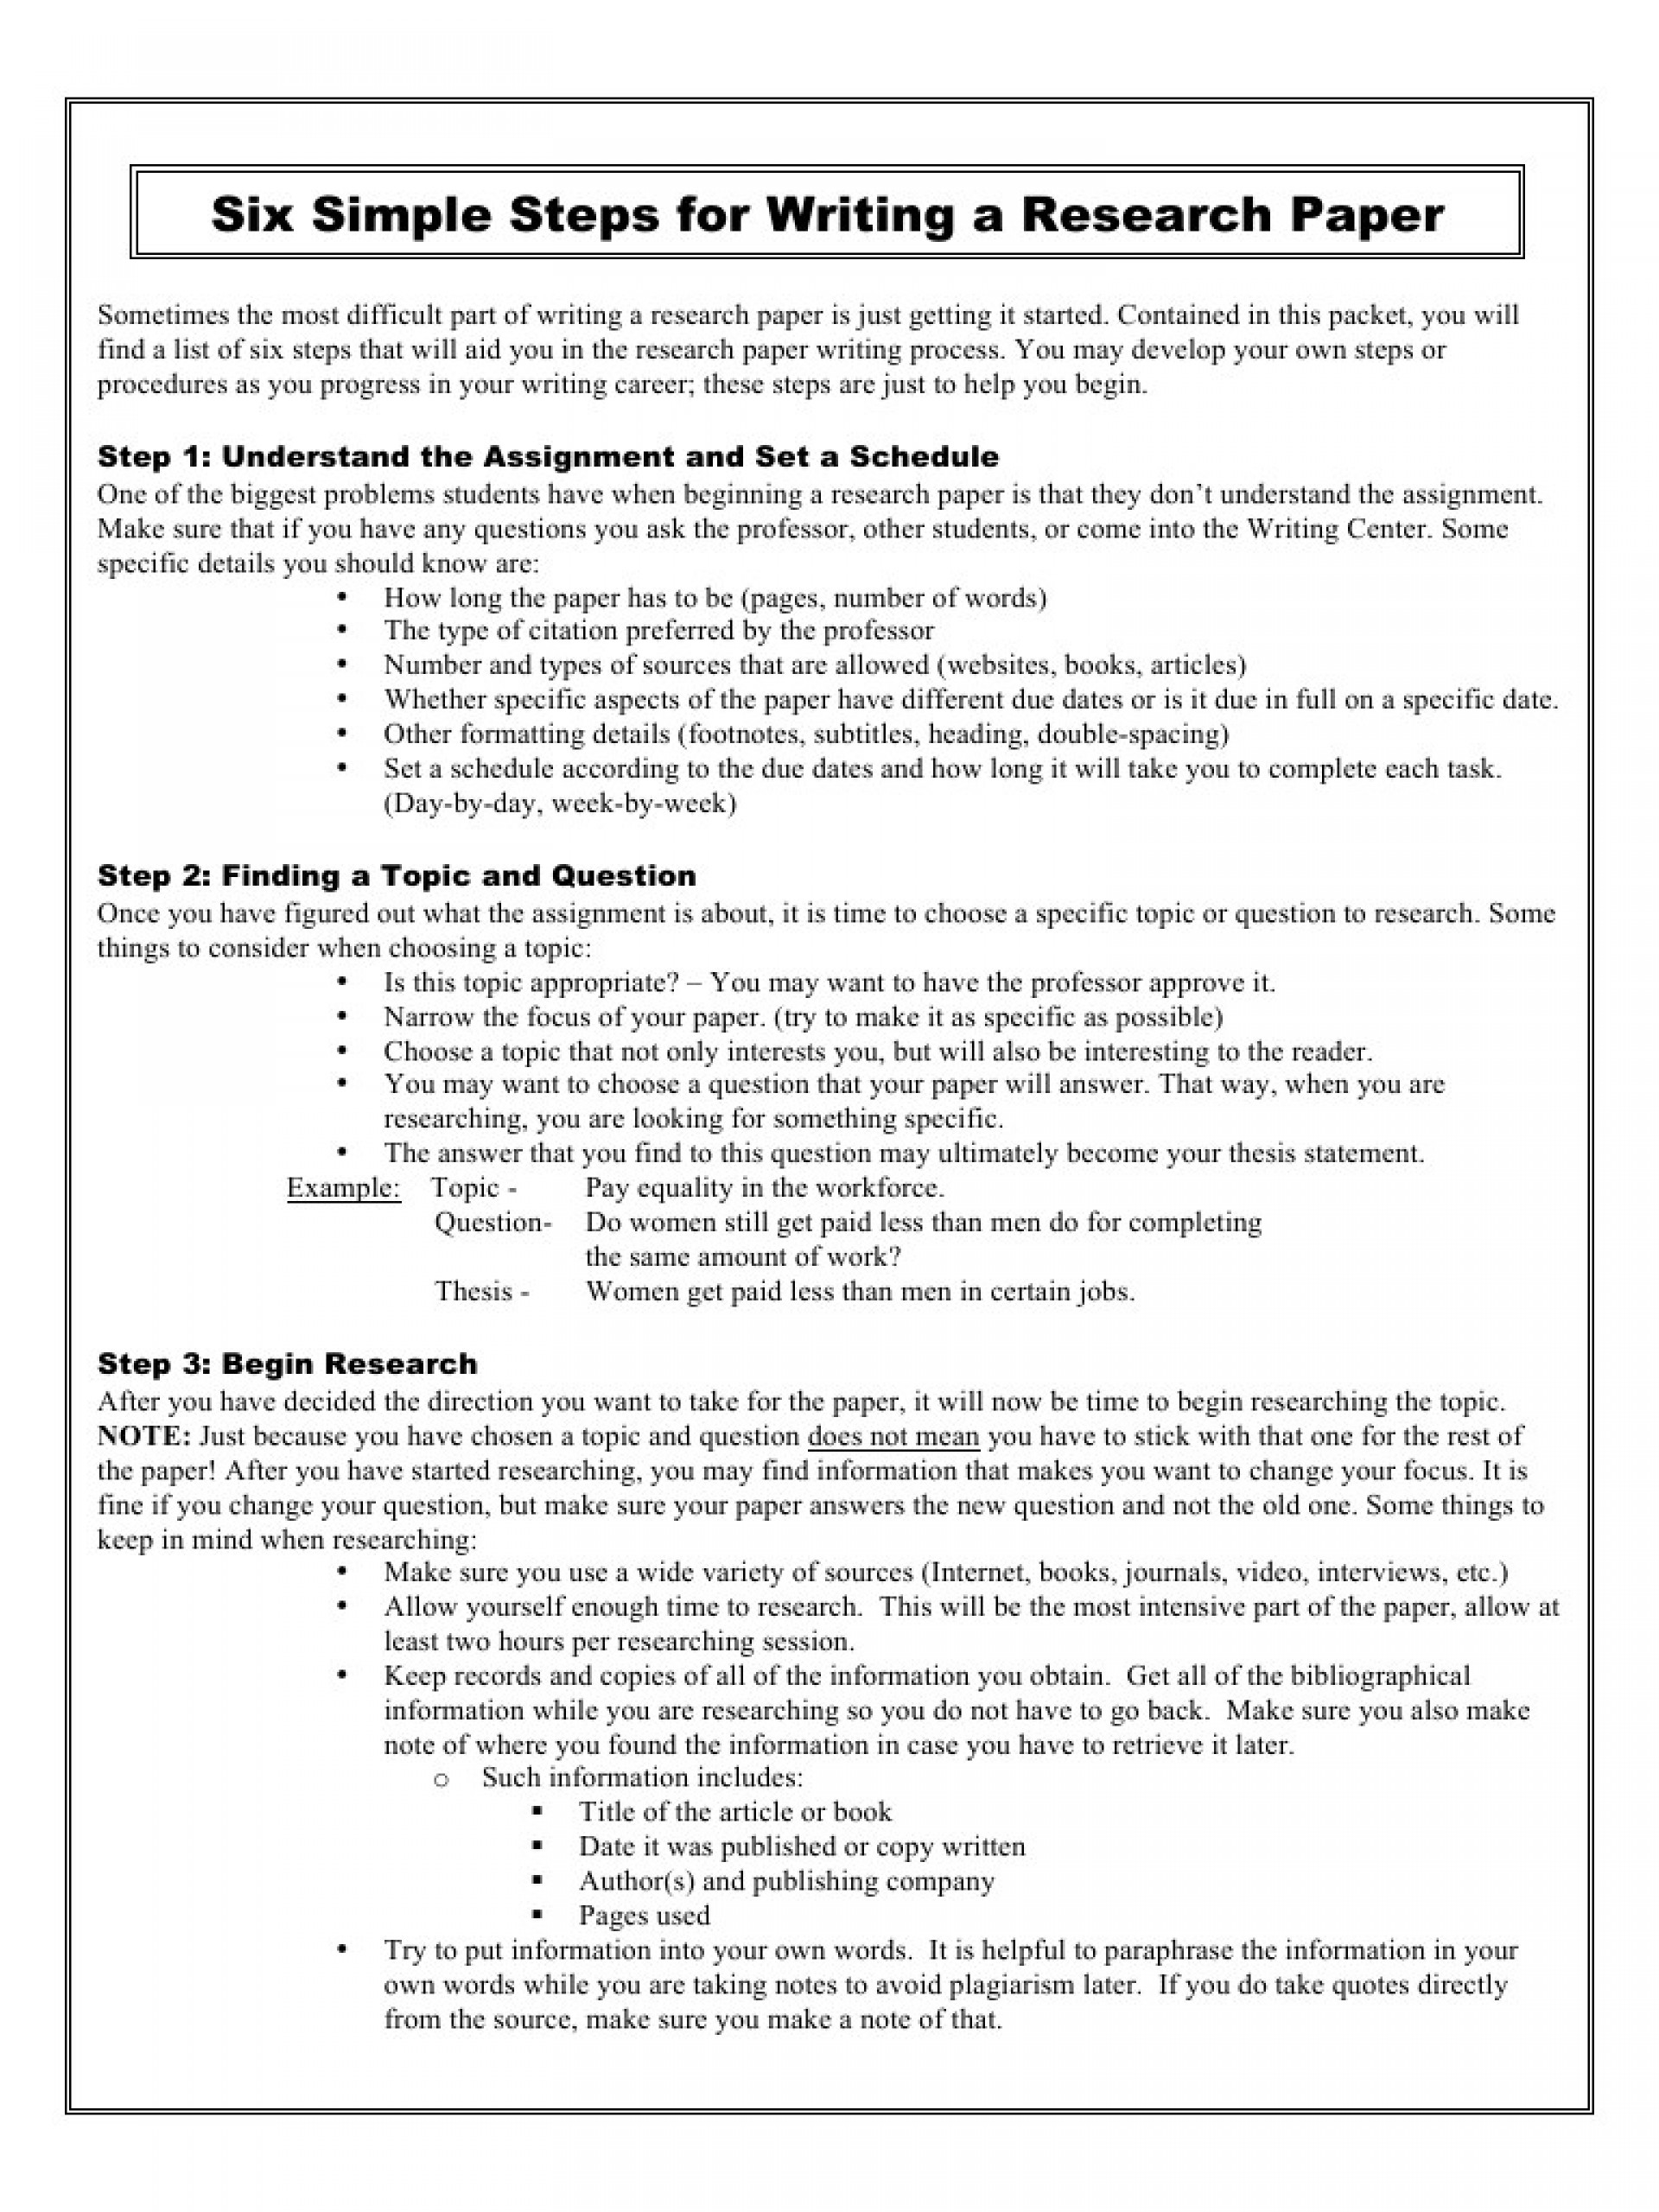 017 Preview Simple Steps For Writing Research Paper Breathtaking A In Ppt 10 To Write Basic Easy 1920